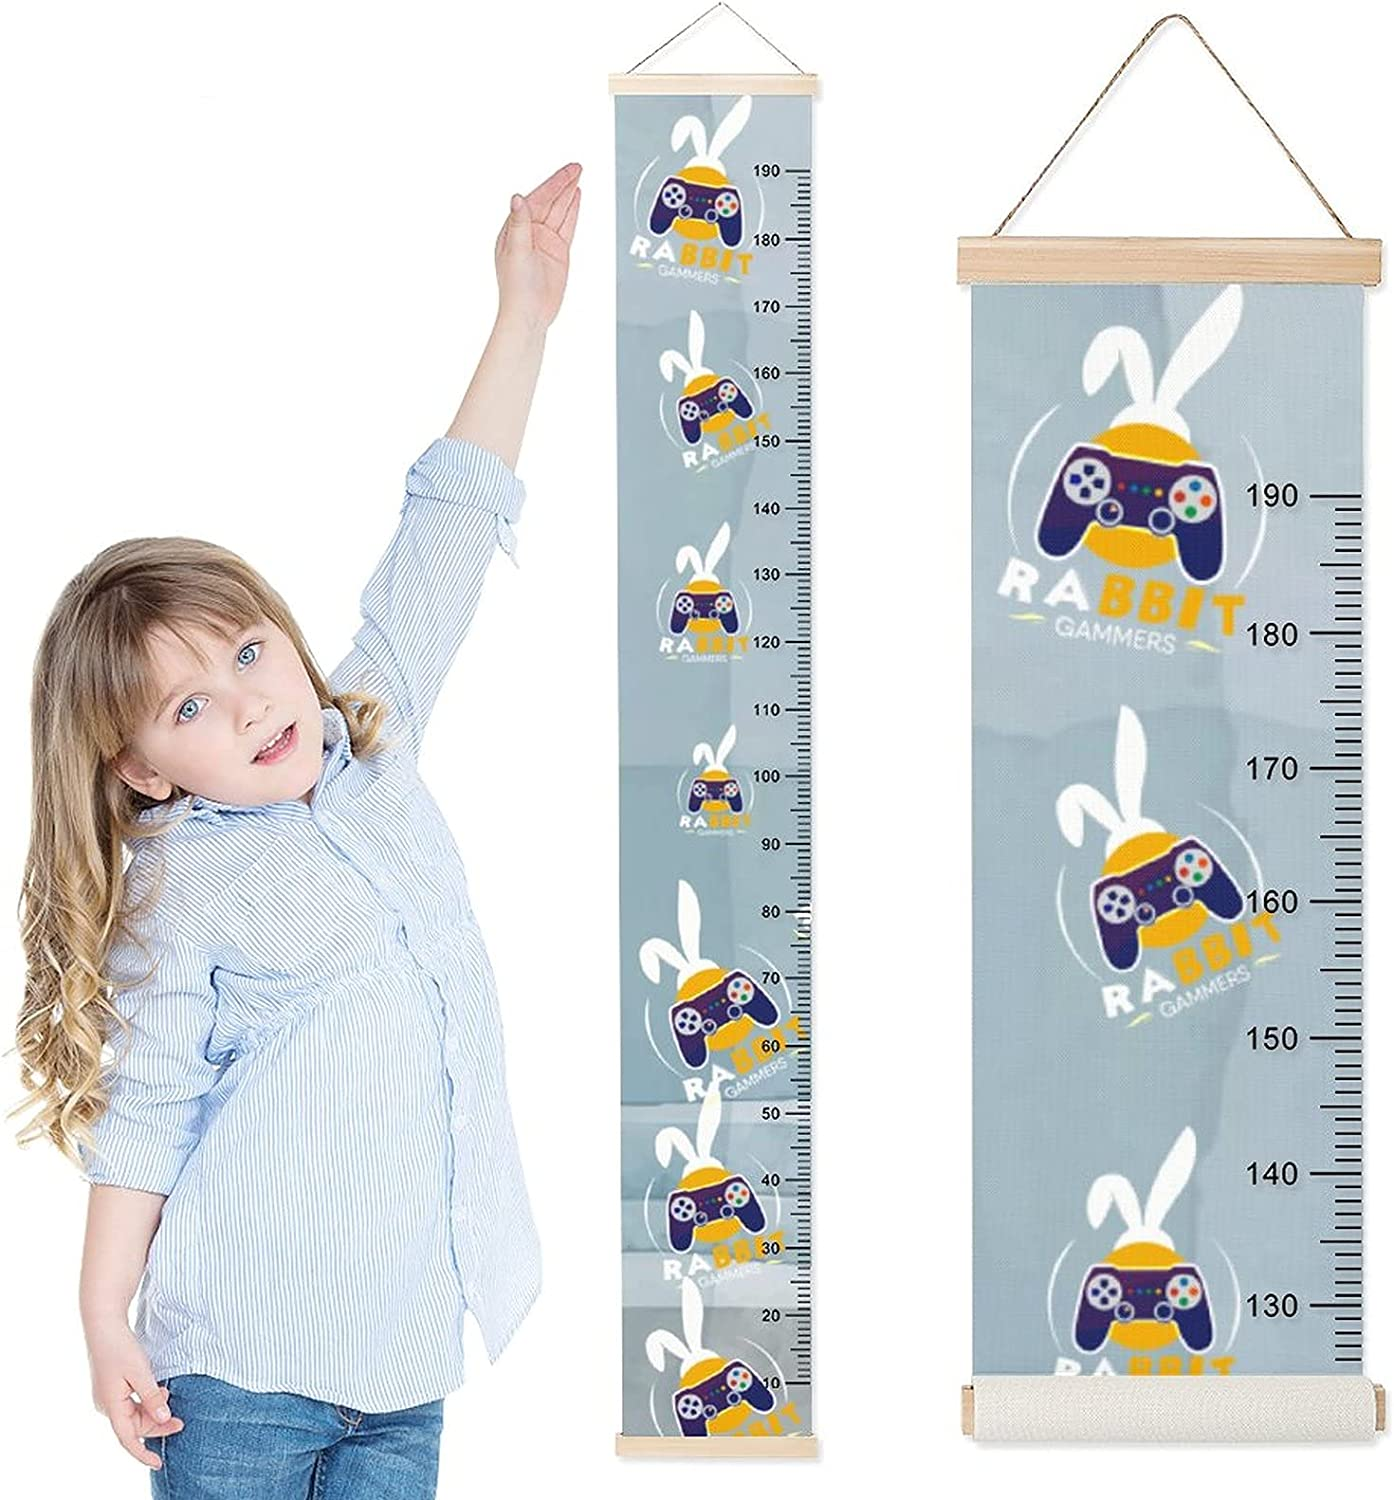 DKISEE Baby Growth Chart Child famous Height f Lowest price challenge Wall Ruler Hanging